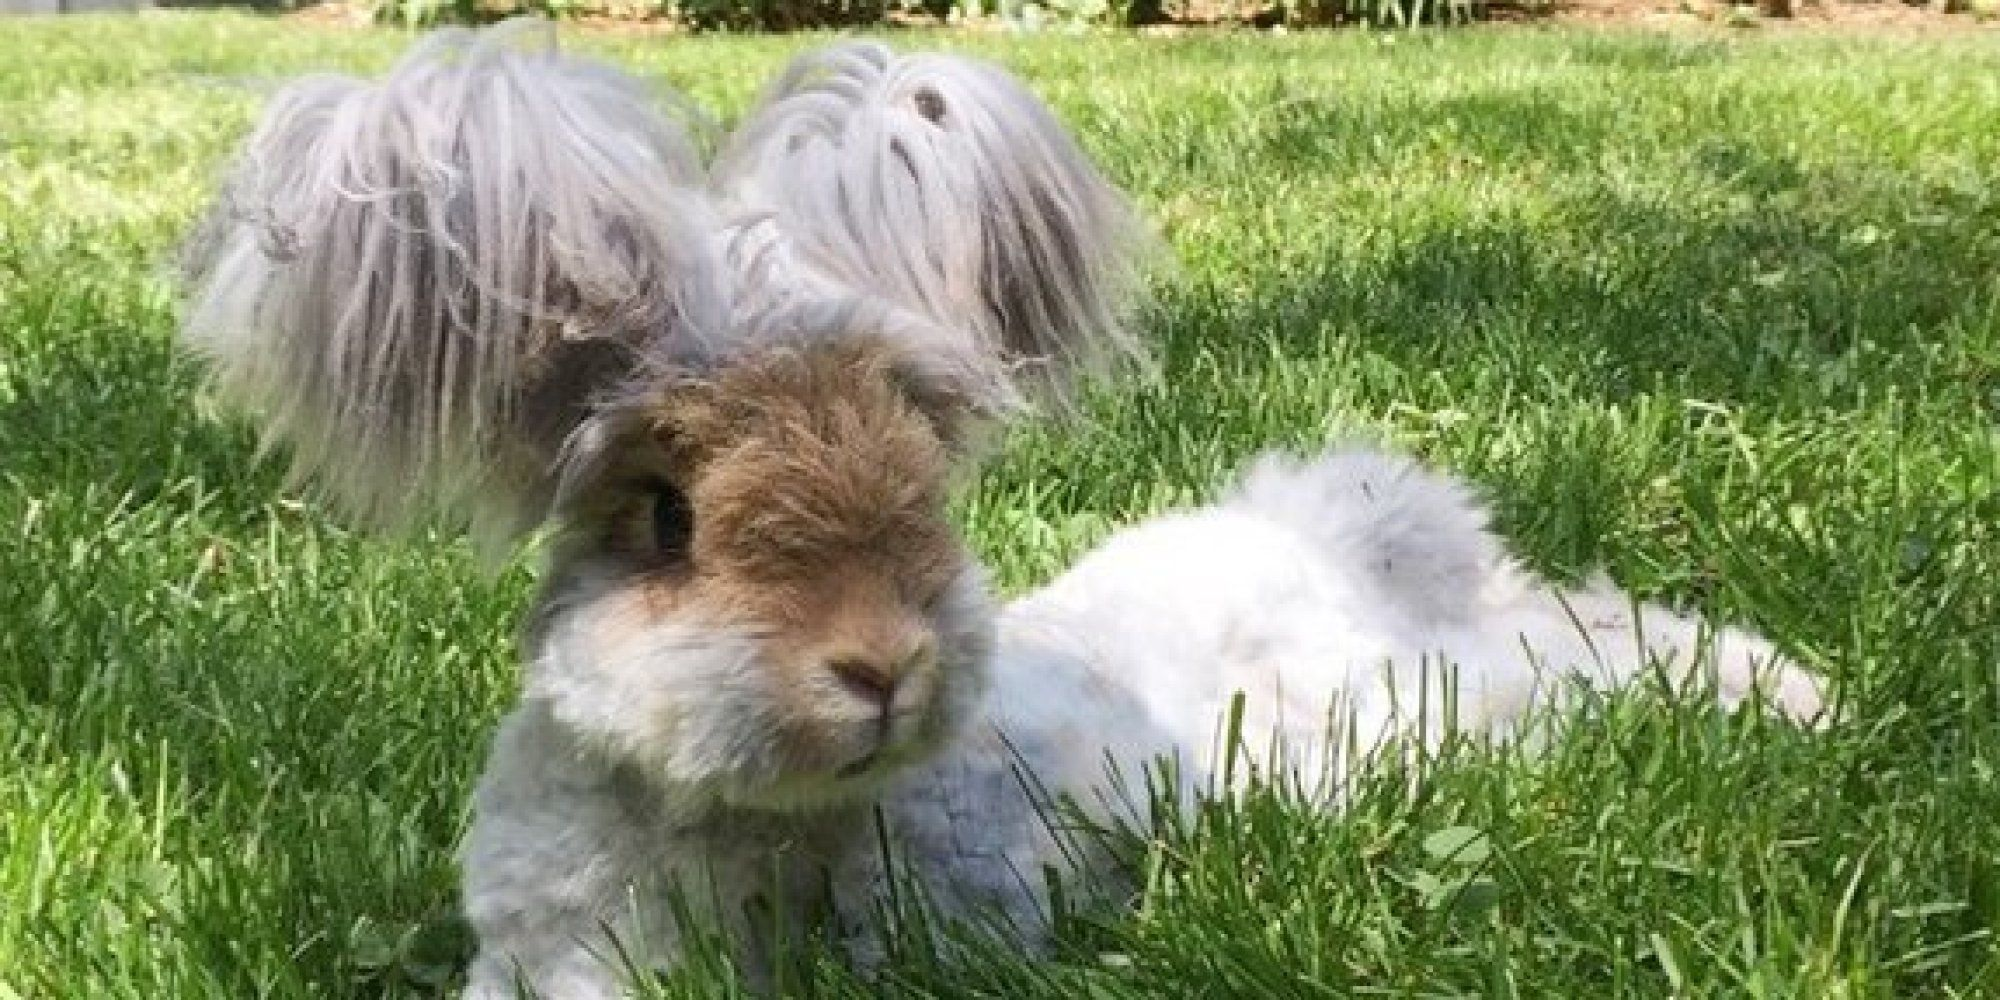 Wally The Angora Bunny Is Your Ultimate Summer Hairspiration   The Huffington Post